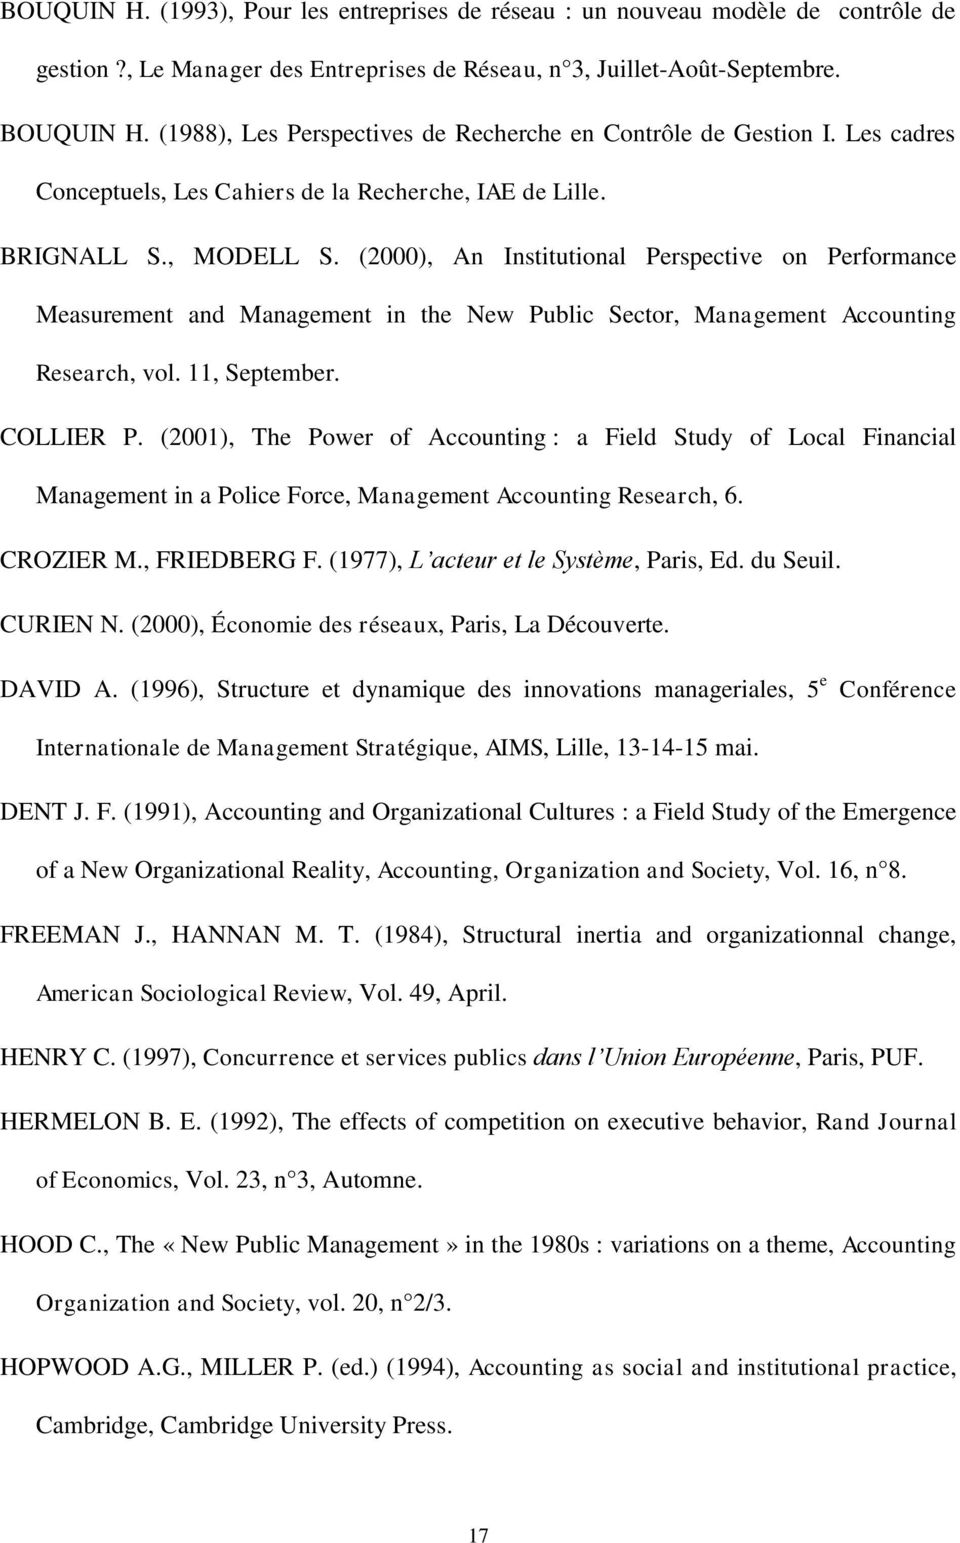 (2000), An Institutional Perspective on Performance Measurement and Management in the New Public Sector, Management Accounting Research, vol. 11, September. COLLIER P.